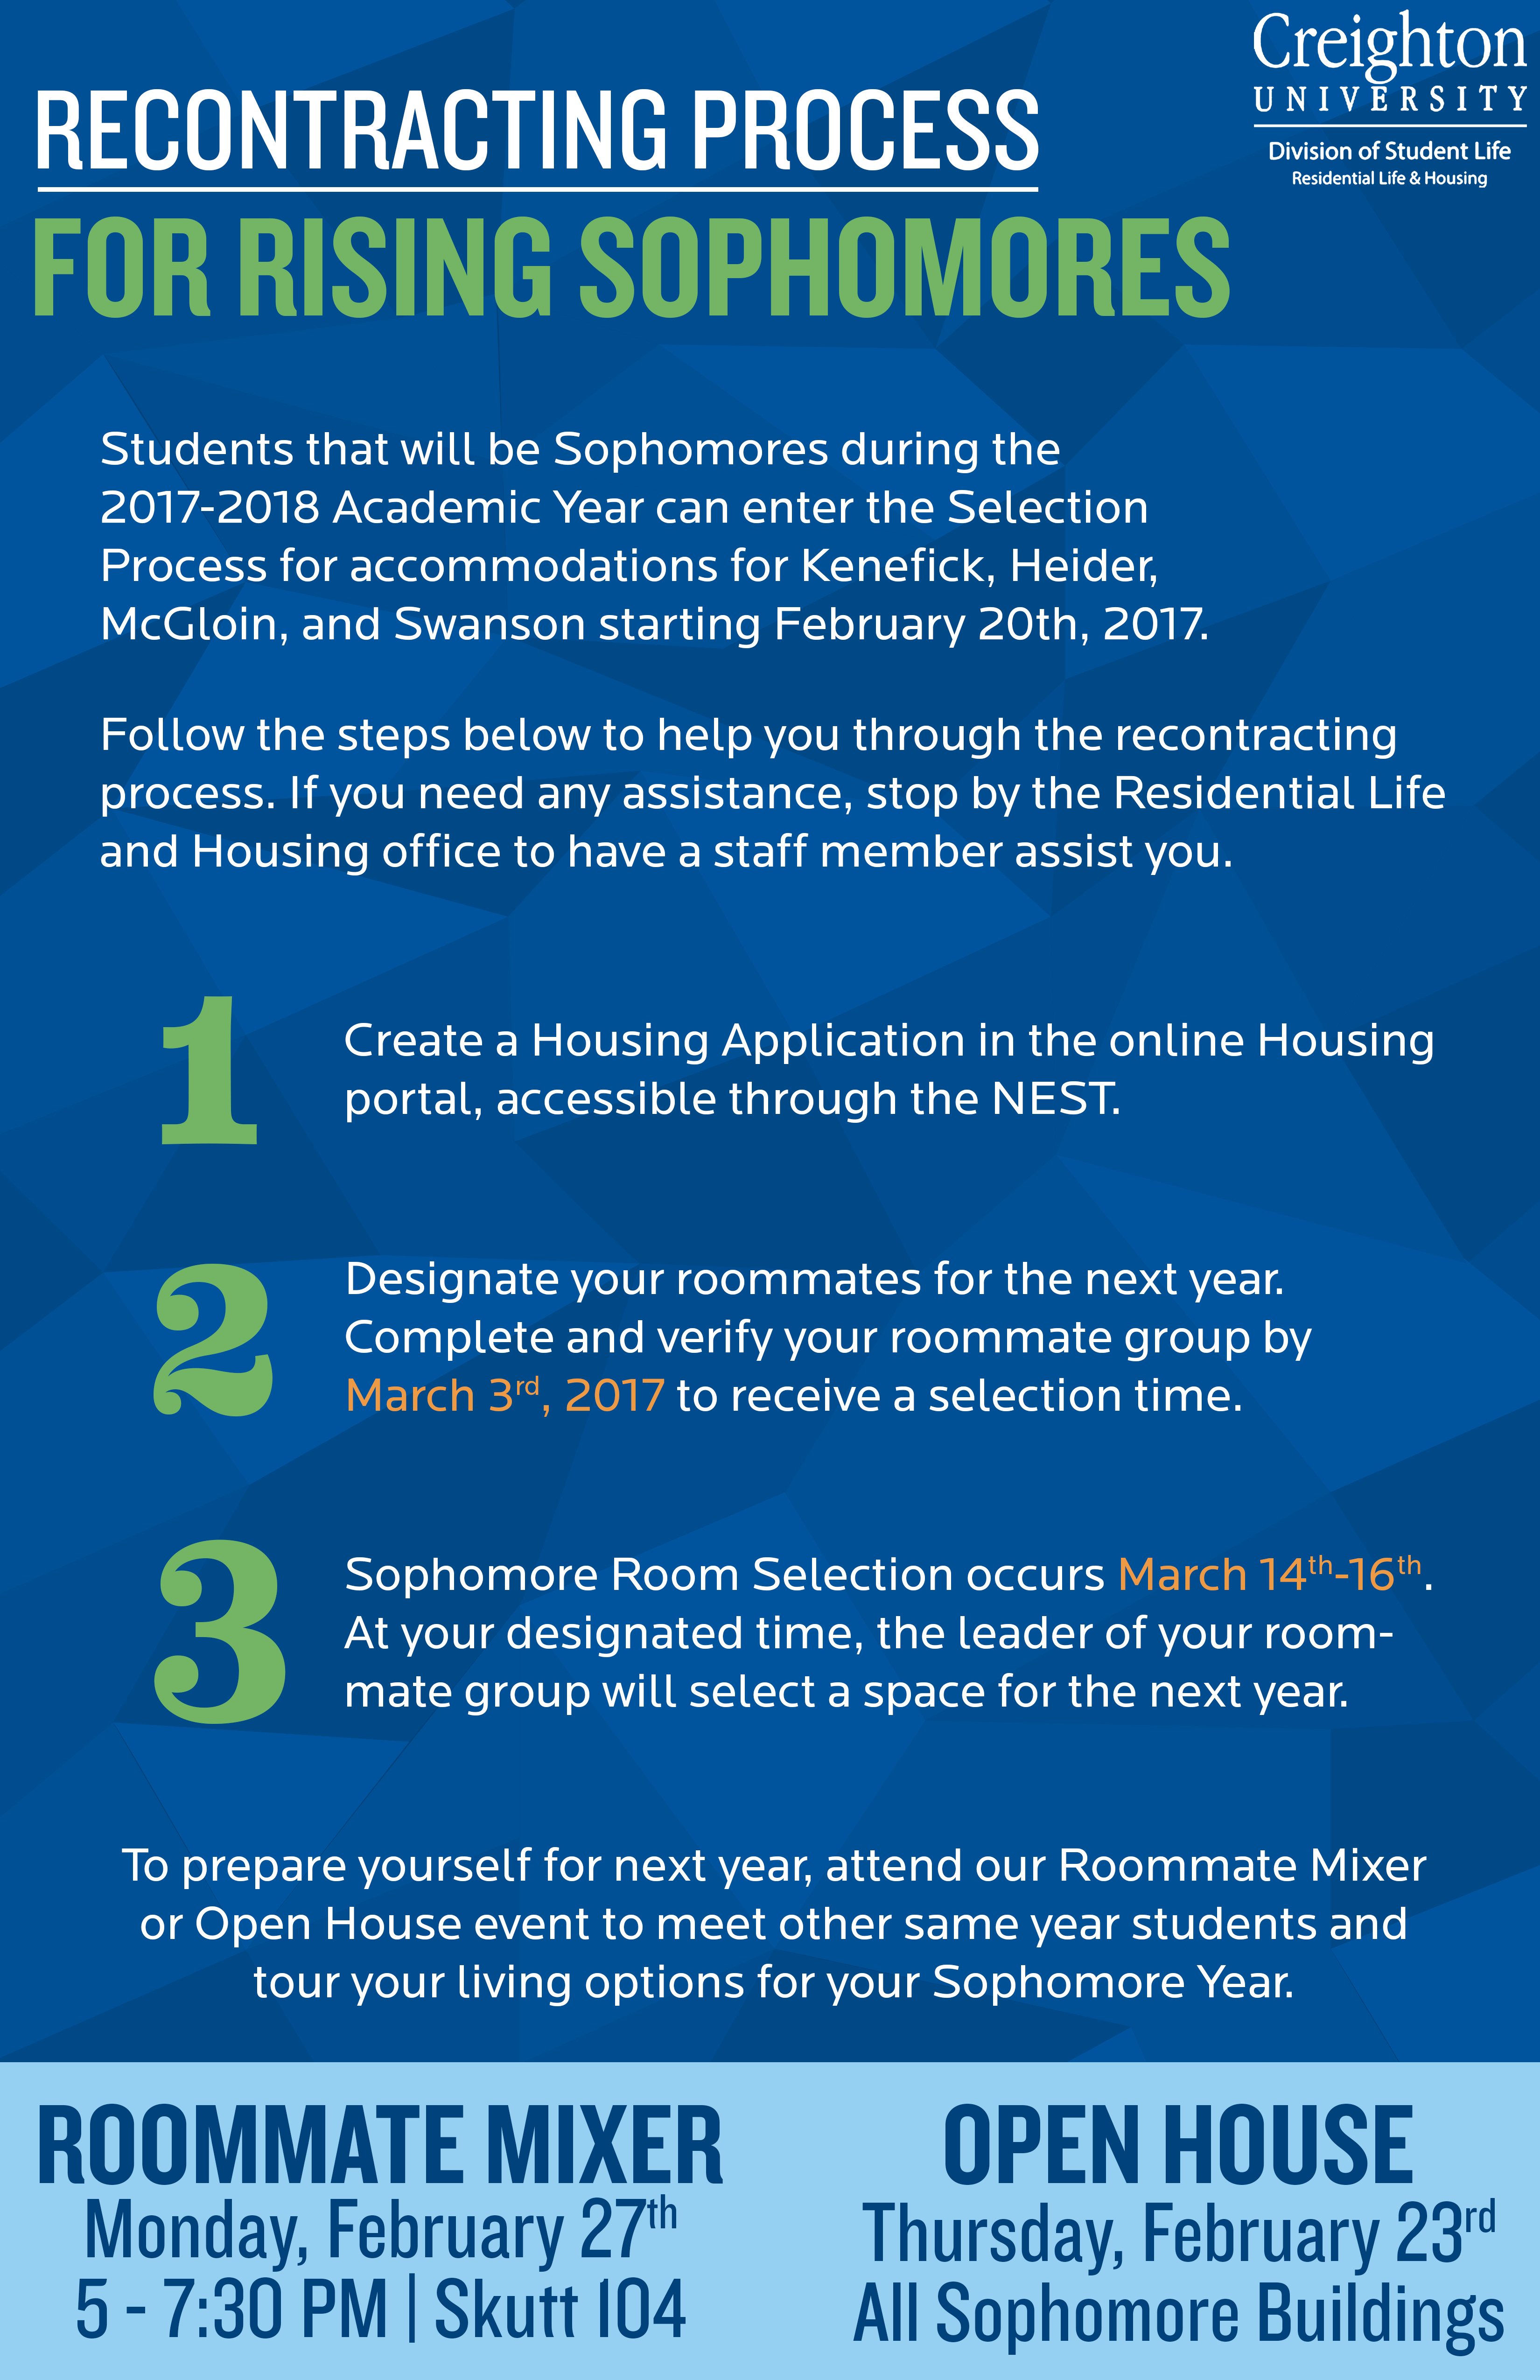 housing re-contracting | residential life and housing | creighton